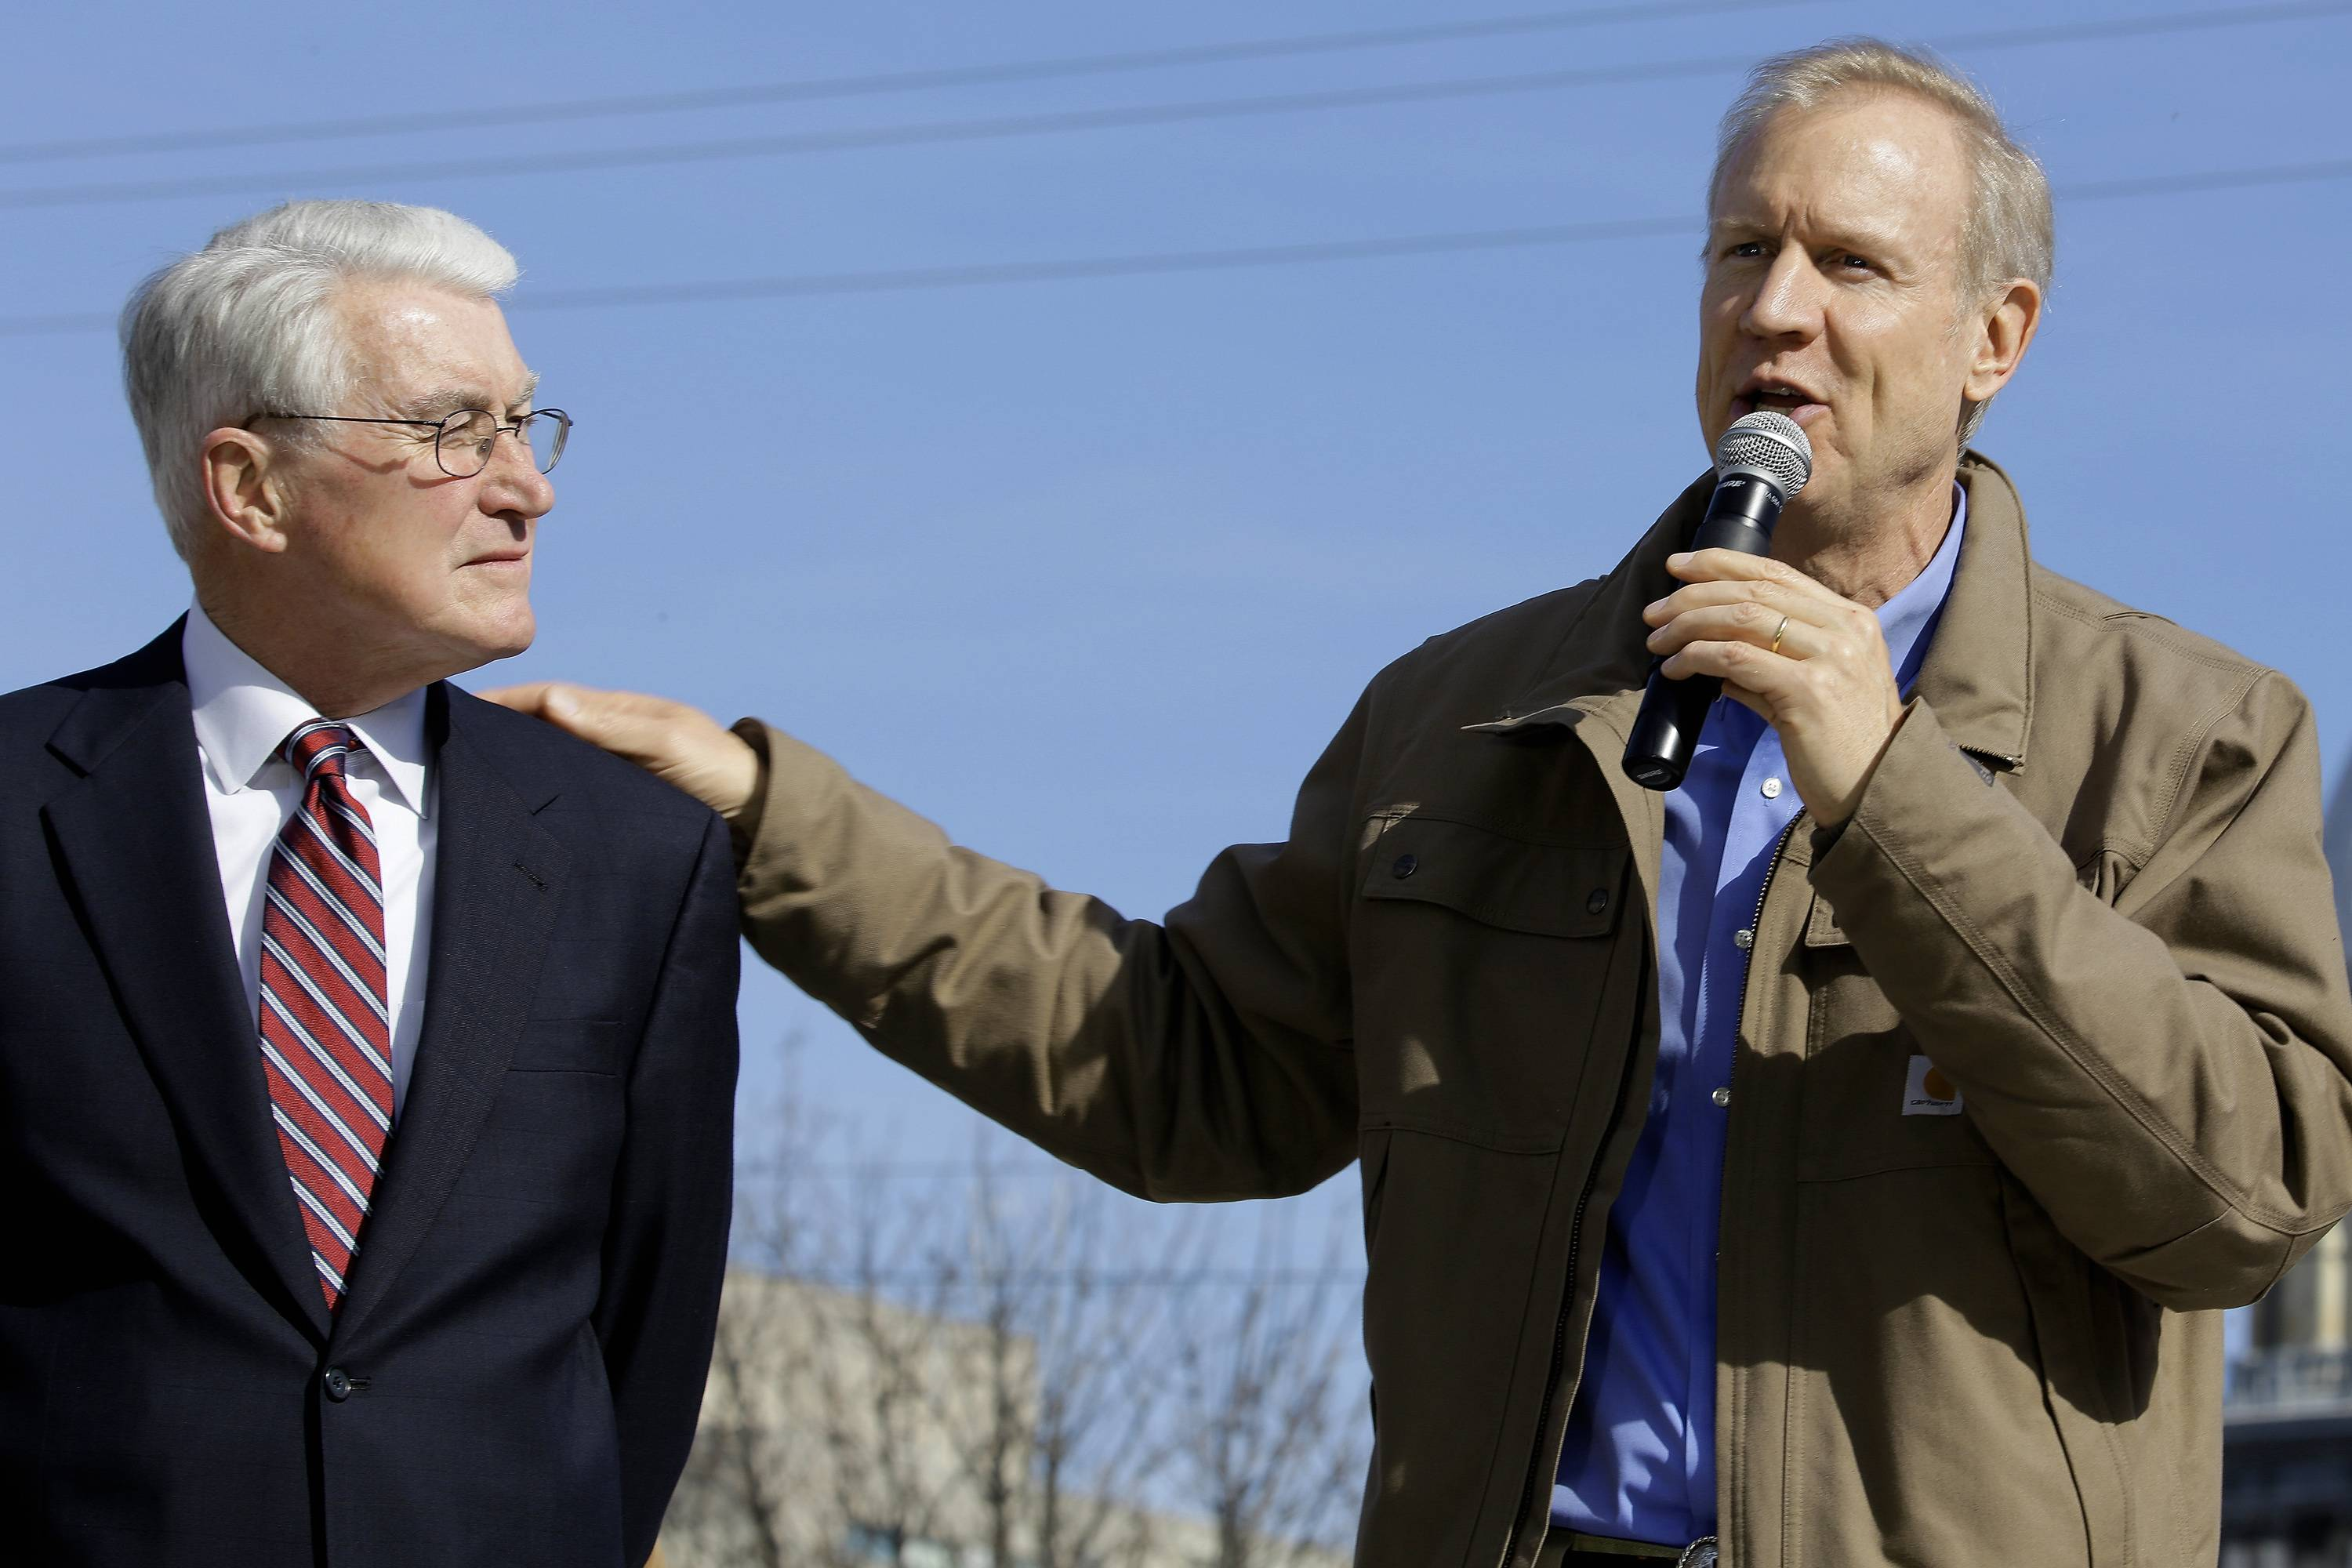 Rauner gets GOP support after former governors' criticisms